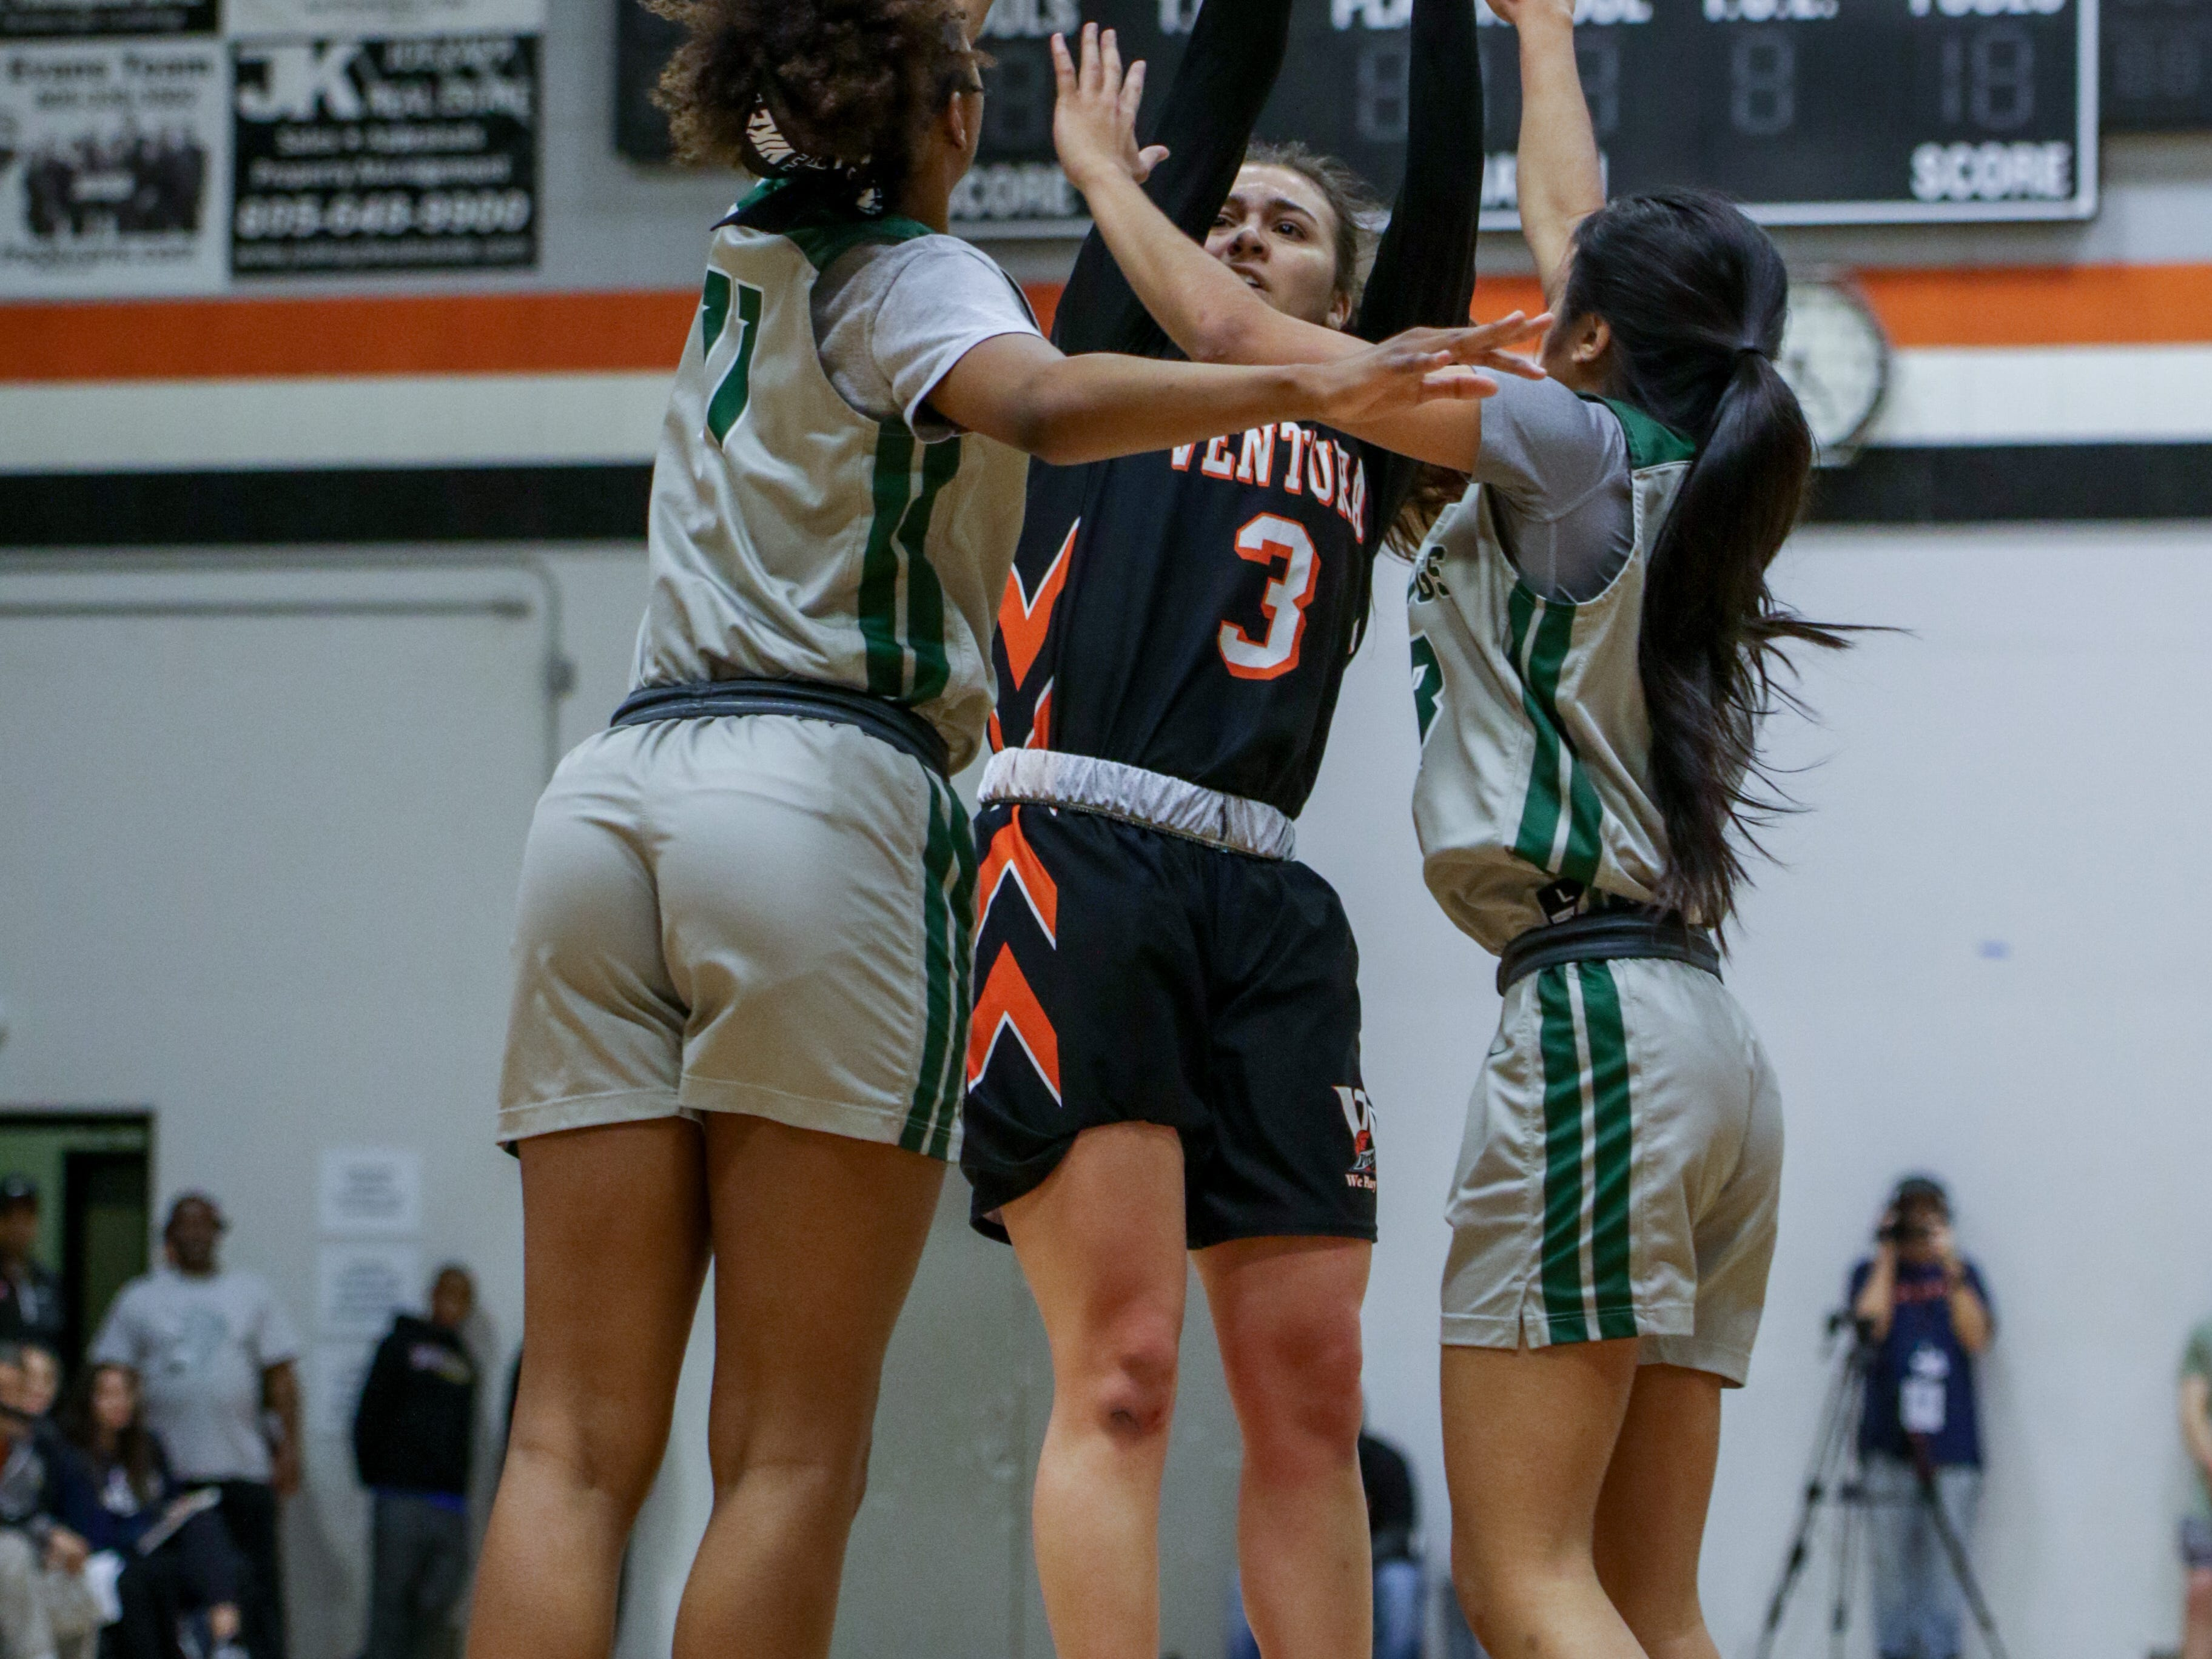 Ventura College freshman Cece Quintino is well defended by Diablo Valley's Leilani Moncrease and Jasmine Kong during the CCCAA state quarterfinals on Friday night in Ventura. Diablo Valley won, 59-57.